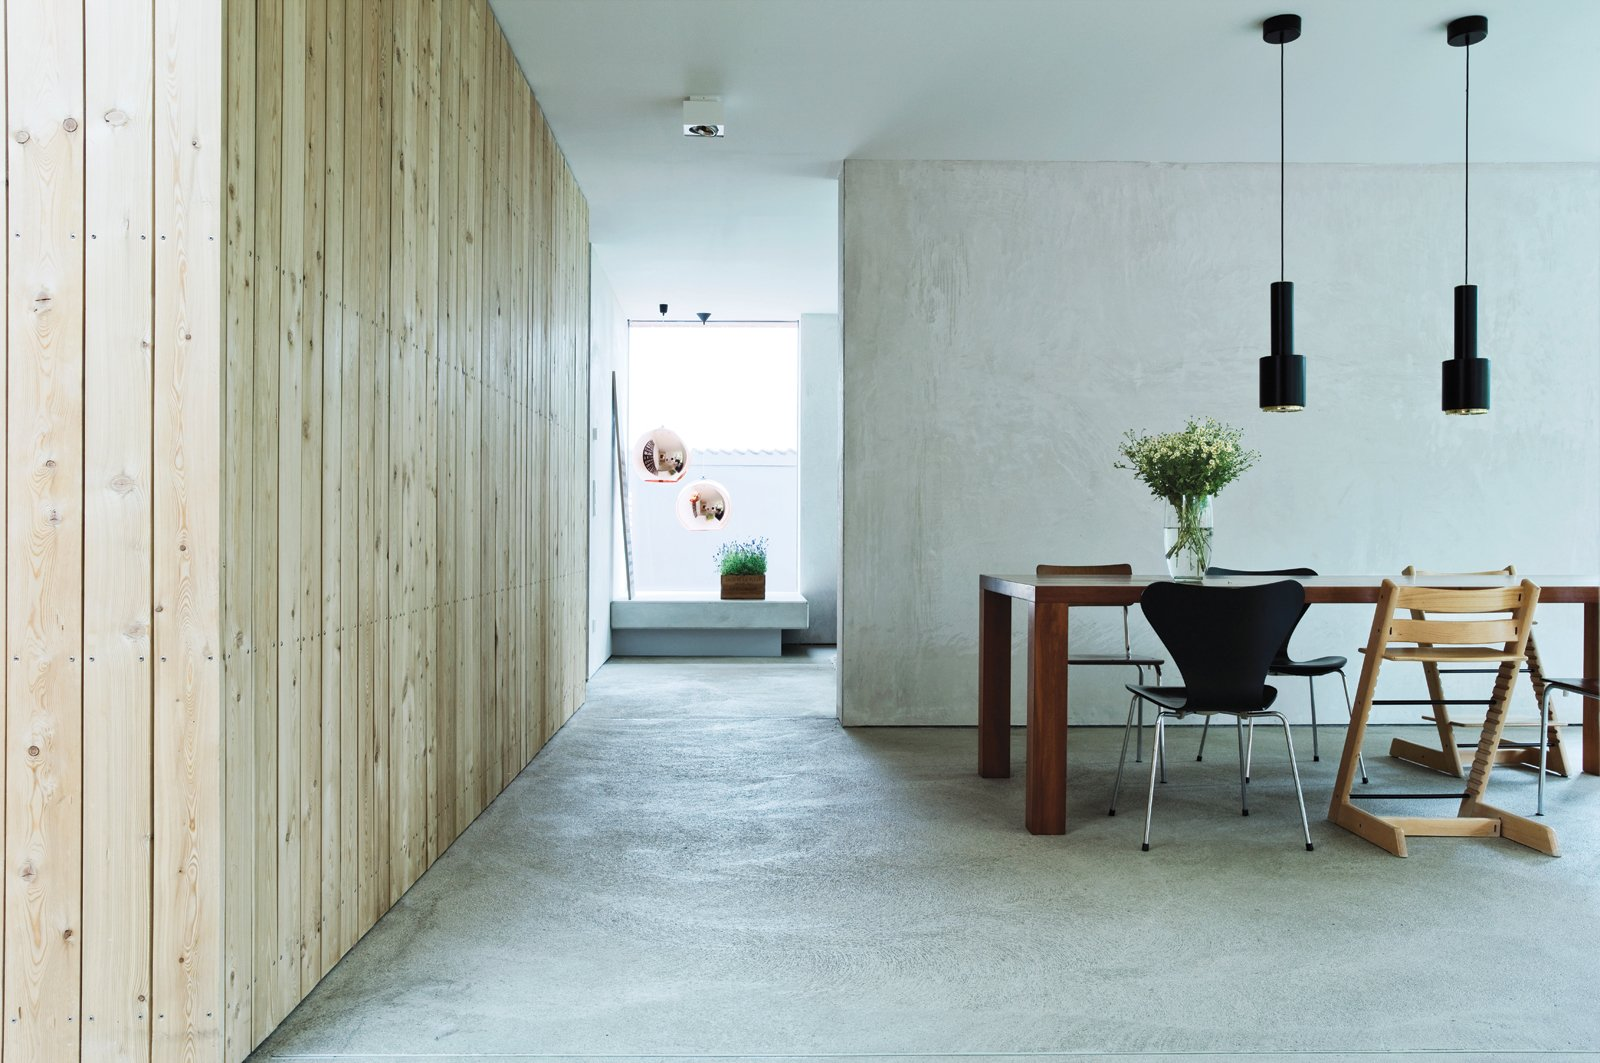 """Idée Concrète  To get a concrete look for the floors throughout the house, the team first considered Pandomo flooring, a slick treat-ment that would be even more expensive than a standard finish. Instead, says Winterhalder, they experimented with raw materials. """"I'd call the suppliers and say, 'Do you have something grayer?' They thought I was crazy."""" In the end, instead of a concrete look, the couple went with actual concrete—at a fifth of the price.   pandomo.de Paint it Black - Photo 5 of 10"""